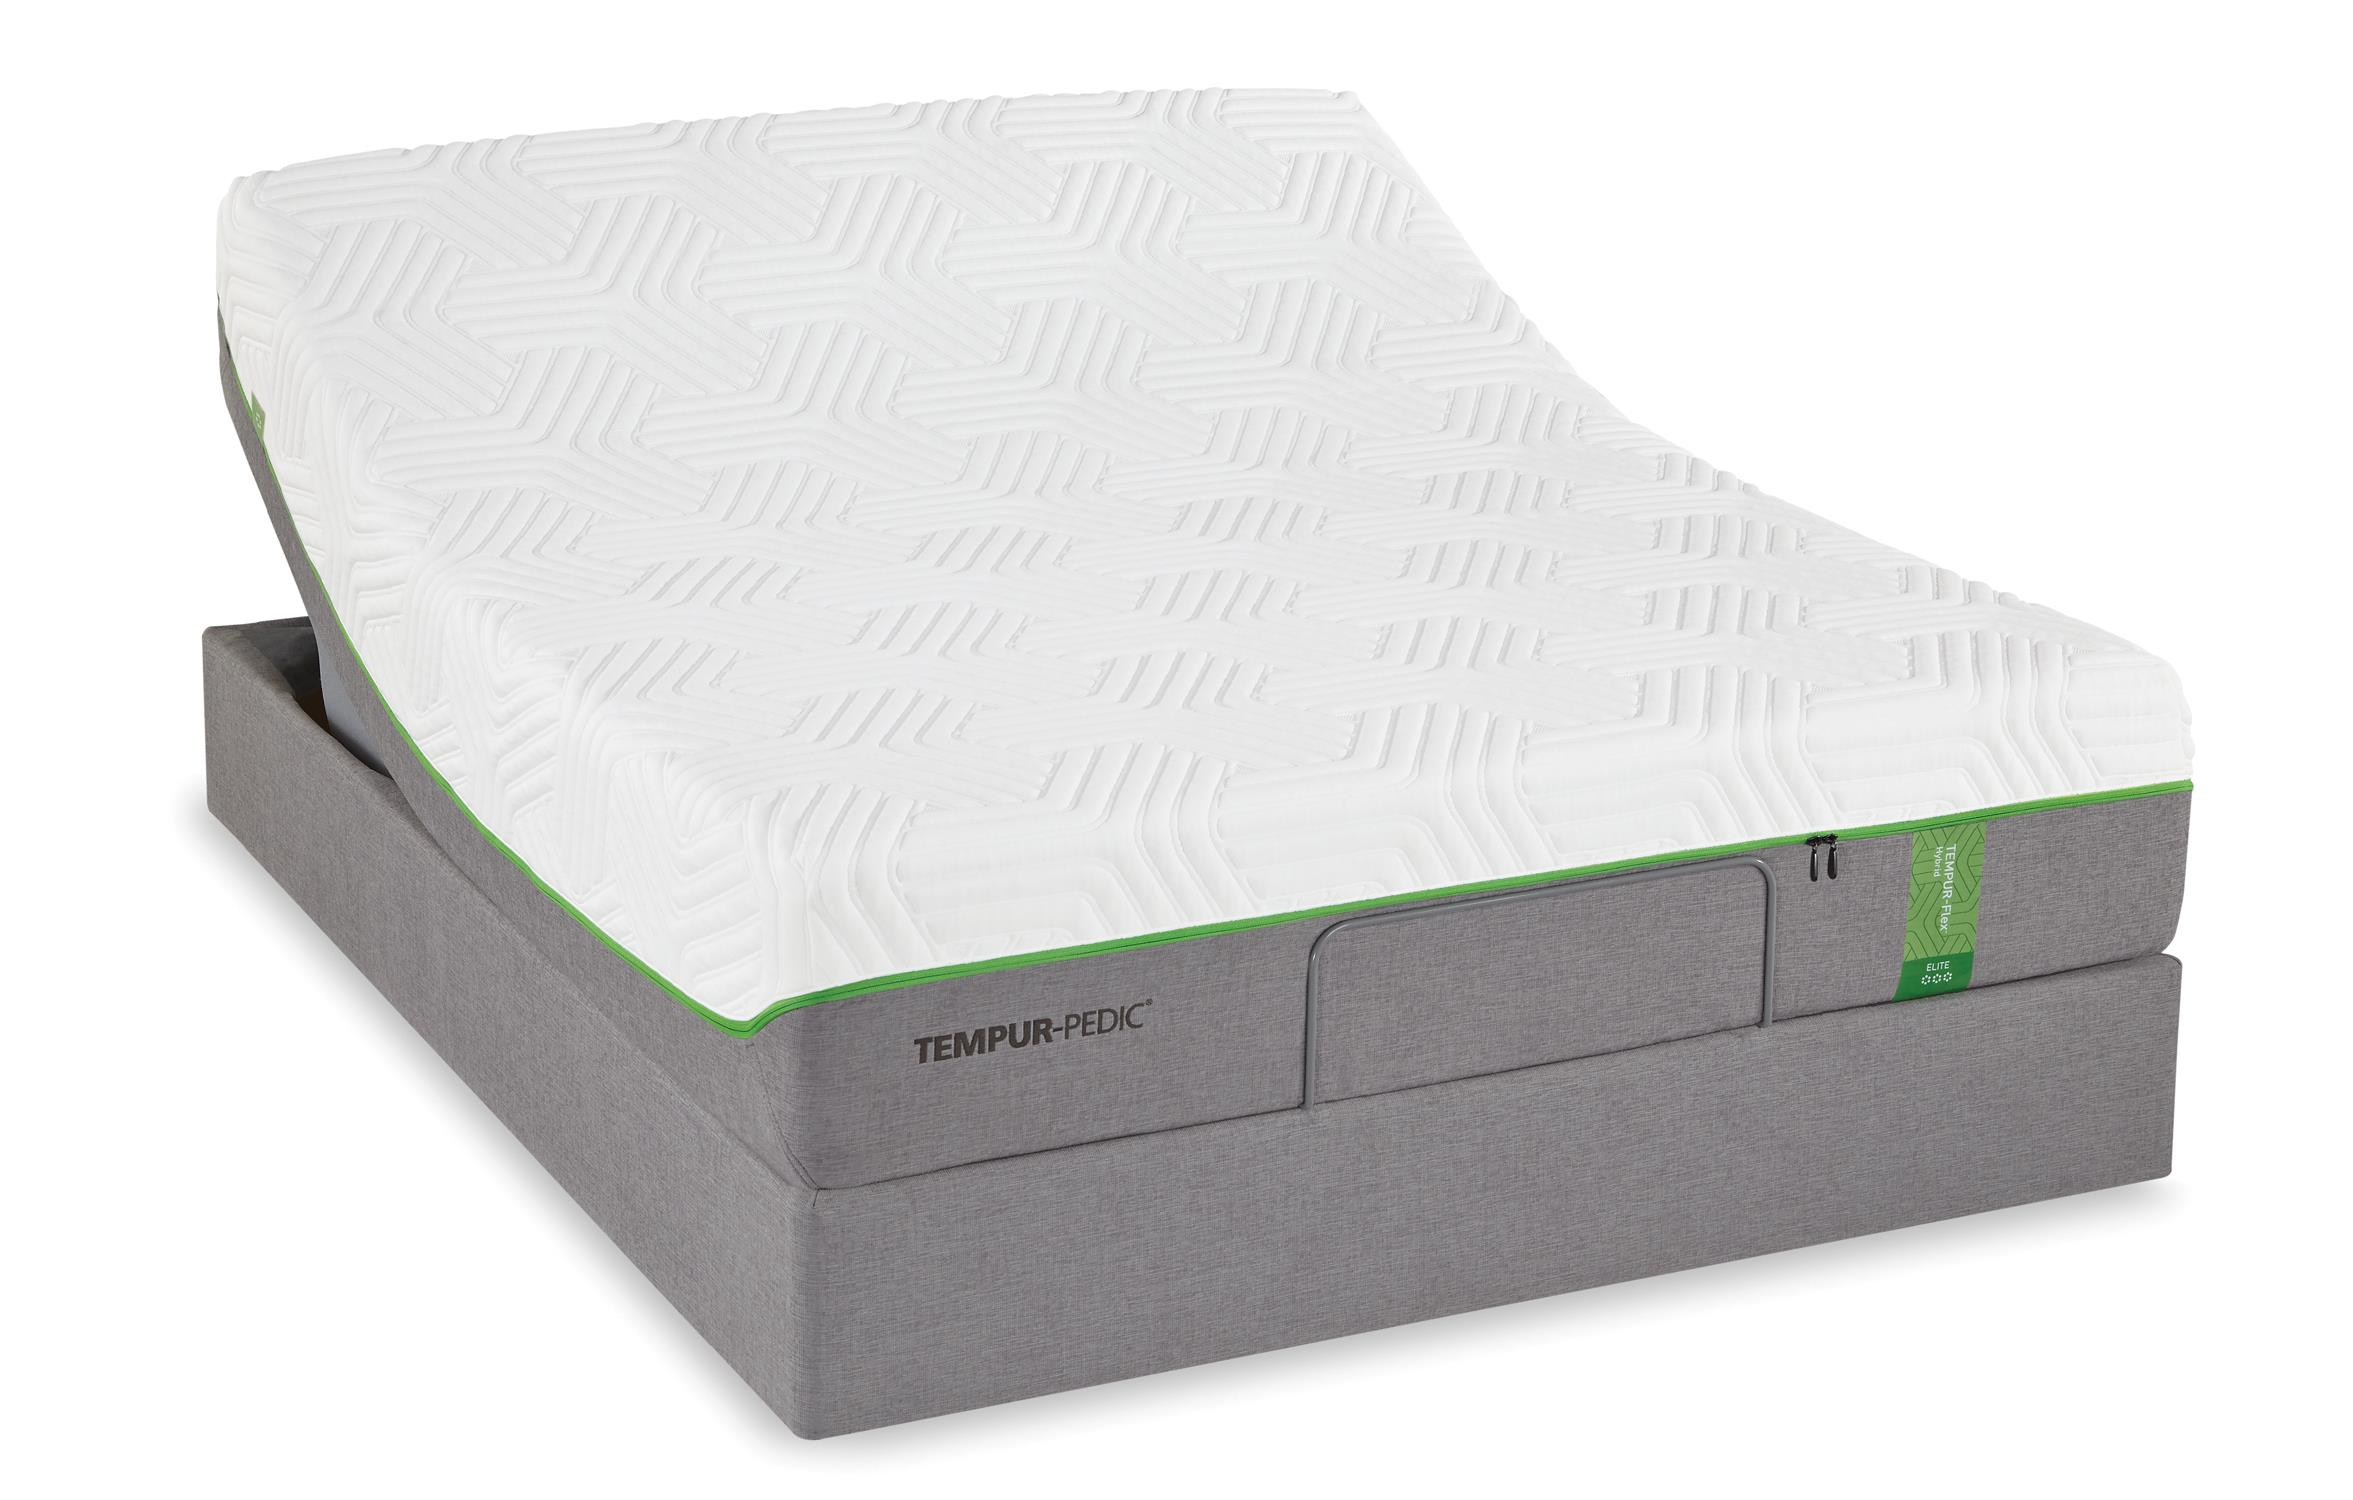 Cal King Medium Soft Plush Mattress And Tempur Up Adjustable Foundation By Tempur Pedic Wolf